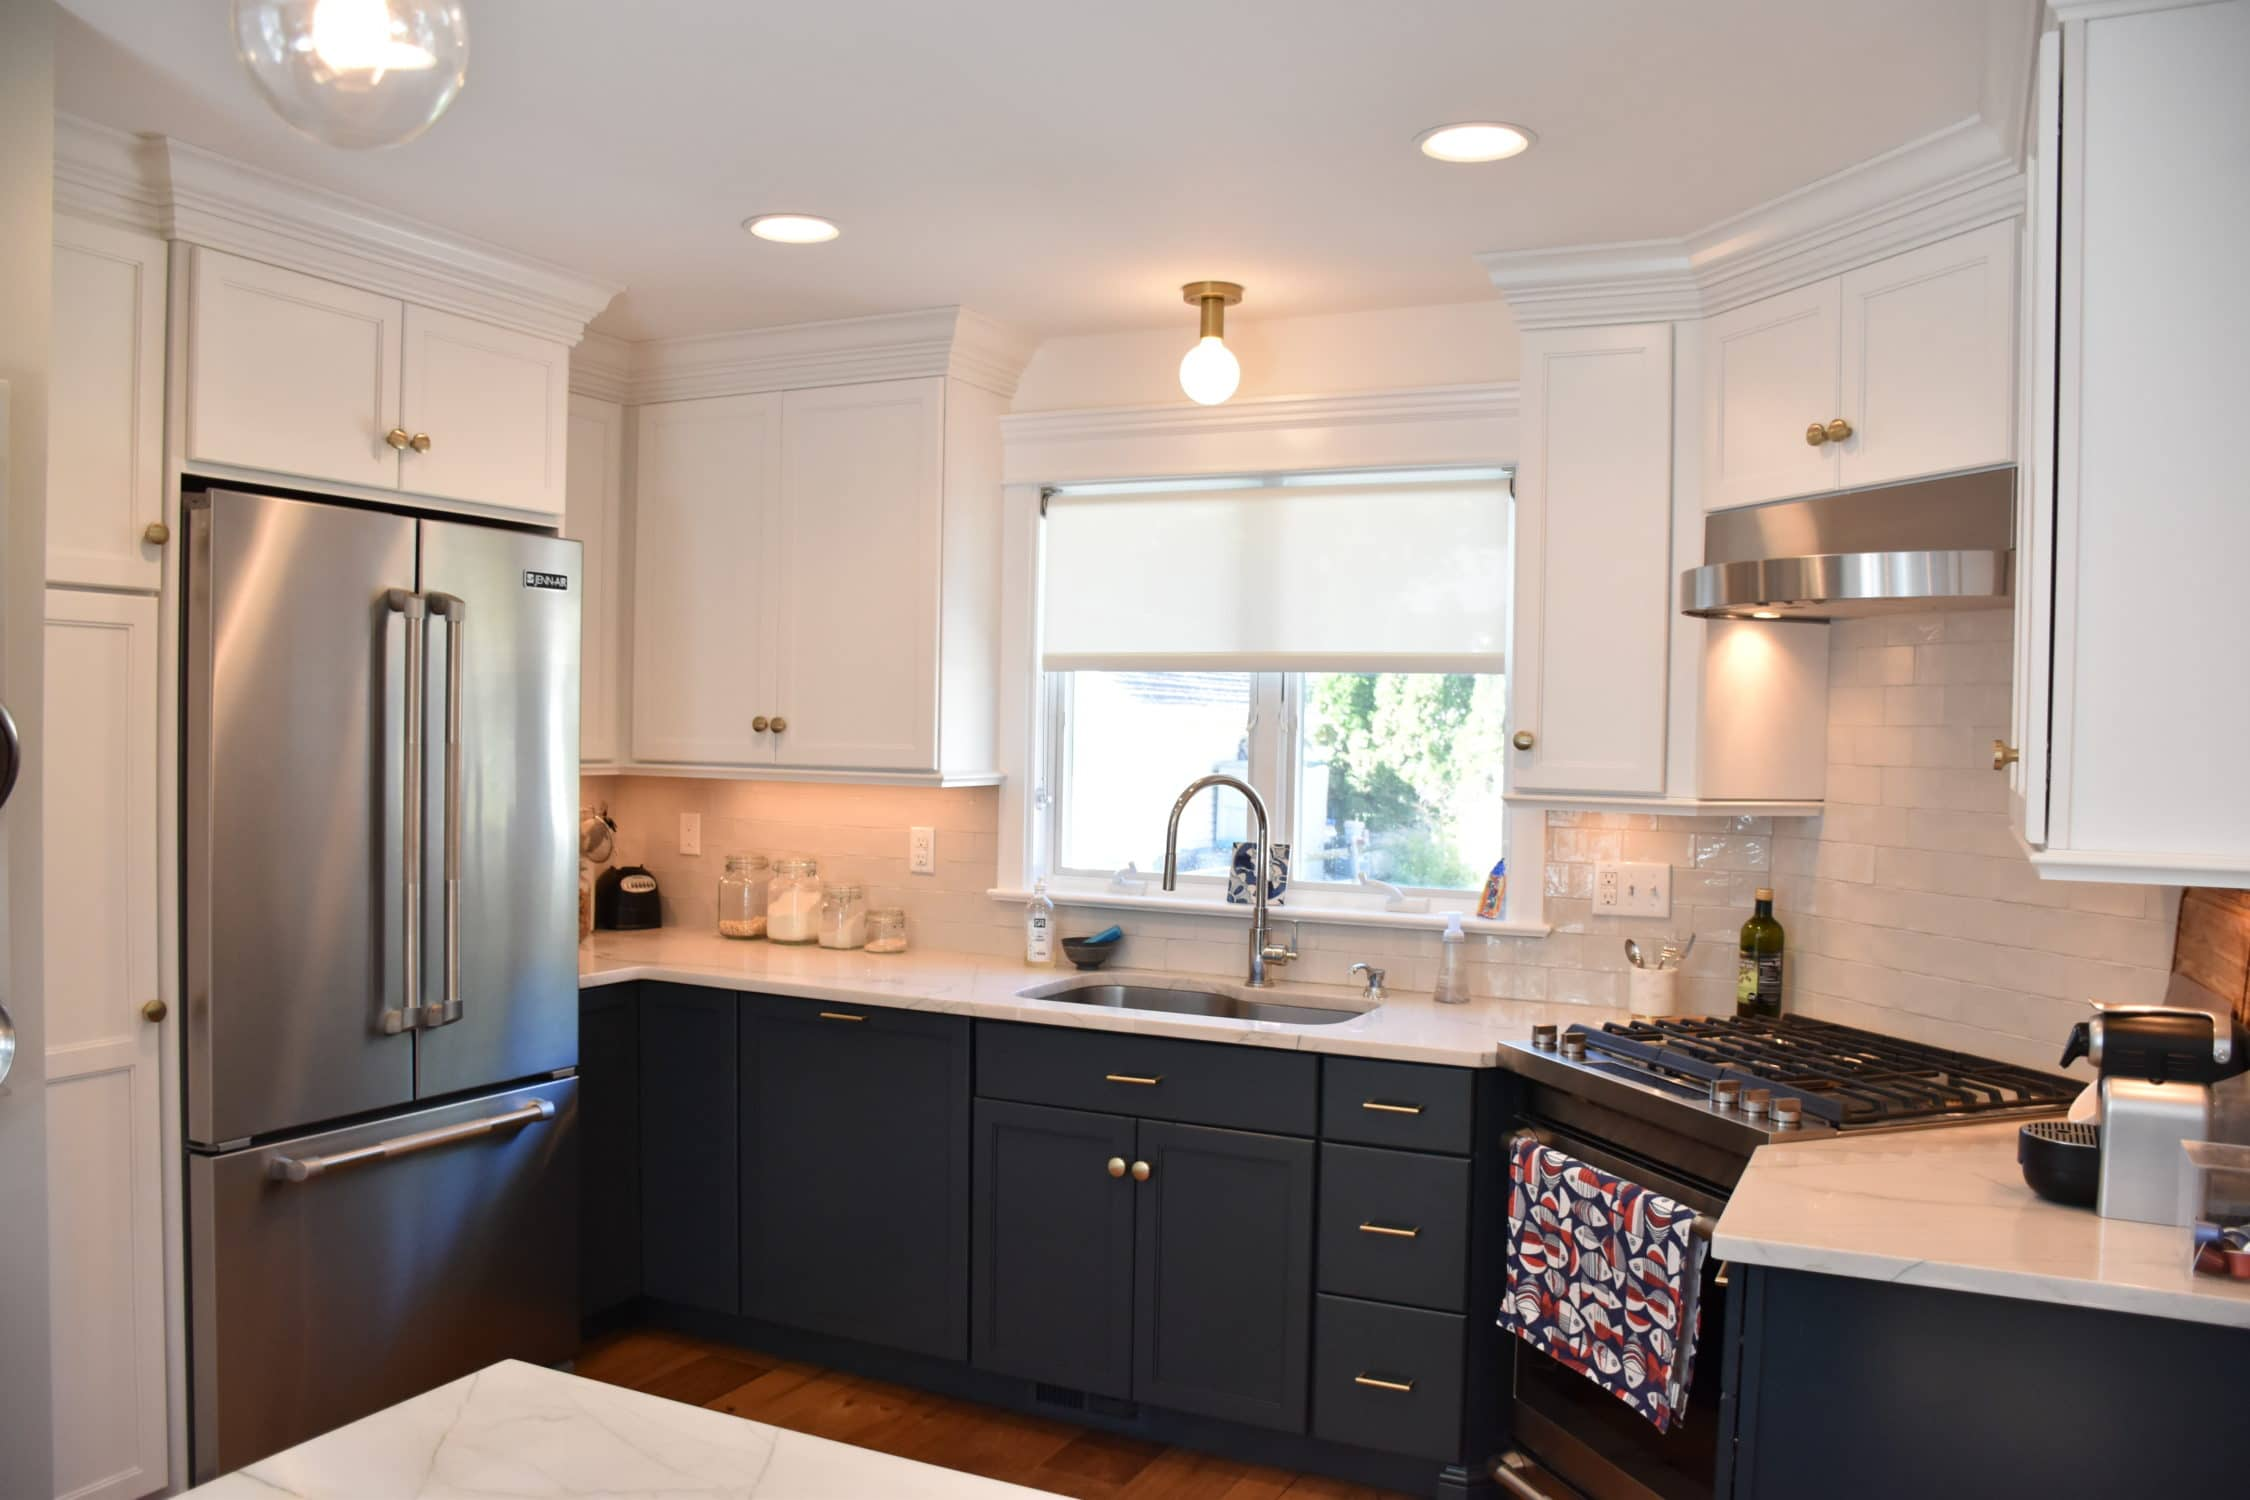 Top 10 Creative Ideas for NJ Kitchen Remodeling in 2019 on Kitchen Remodeling Ideas  id=70910